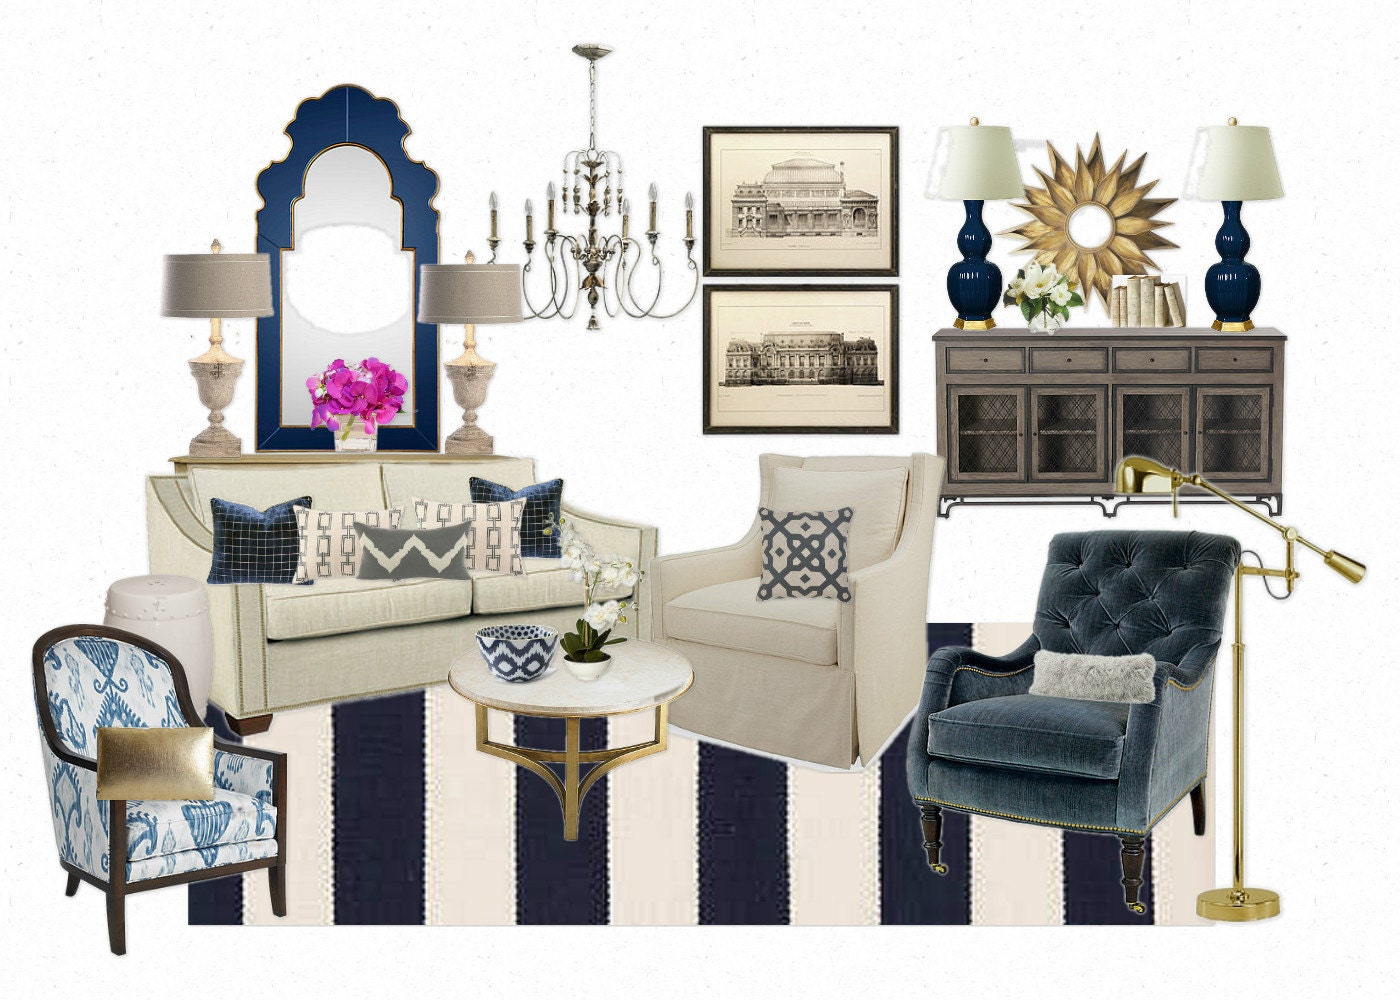 design board navy blue living room inspiration decor can be